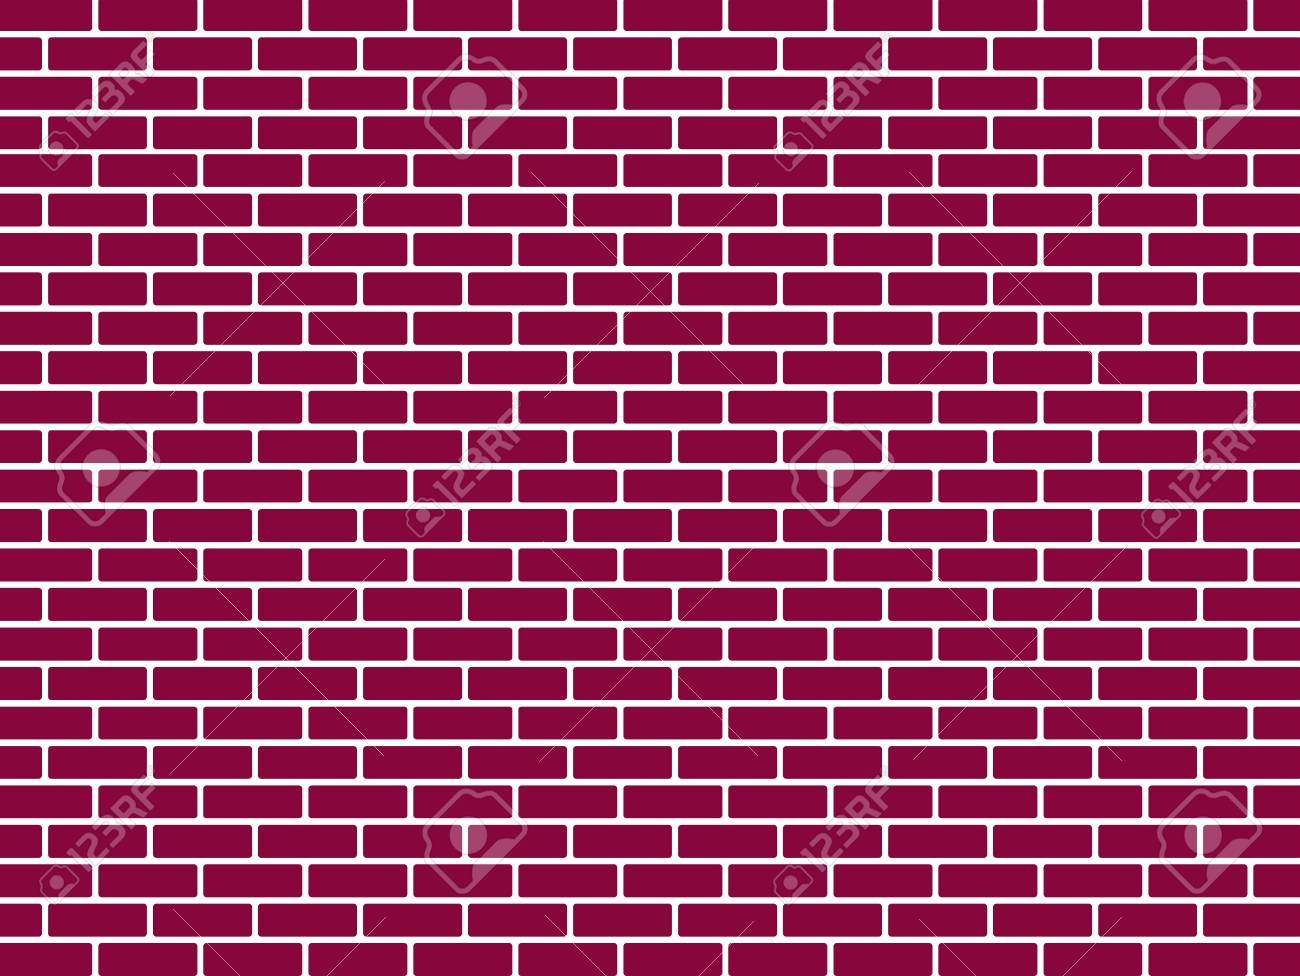 Red brick wall background vector illustration - 86412120